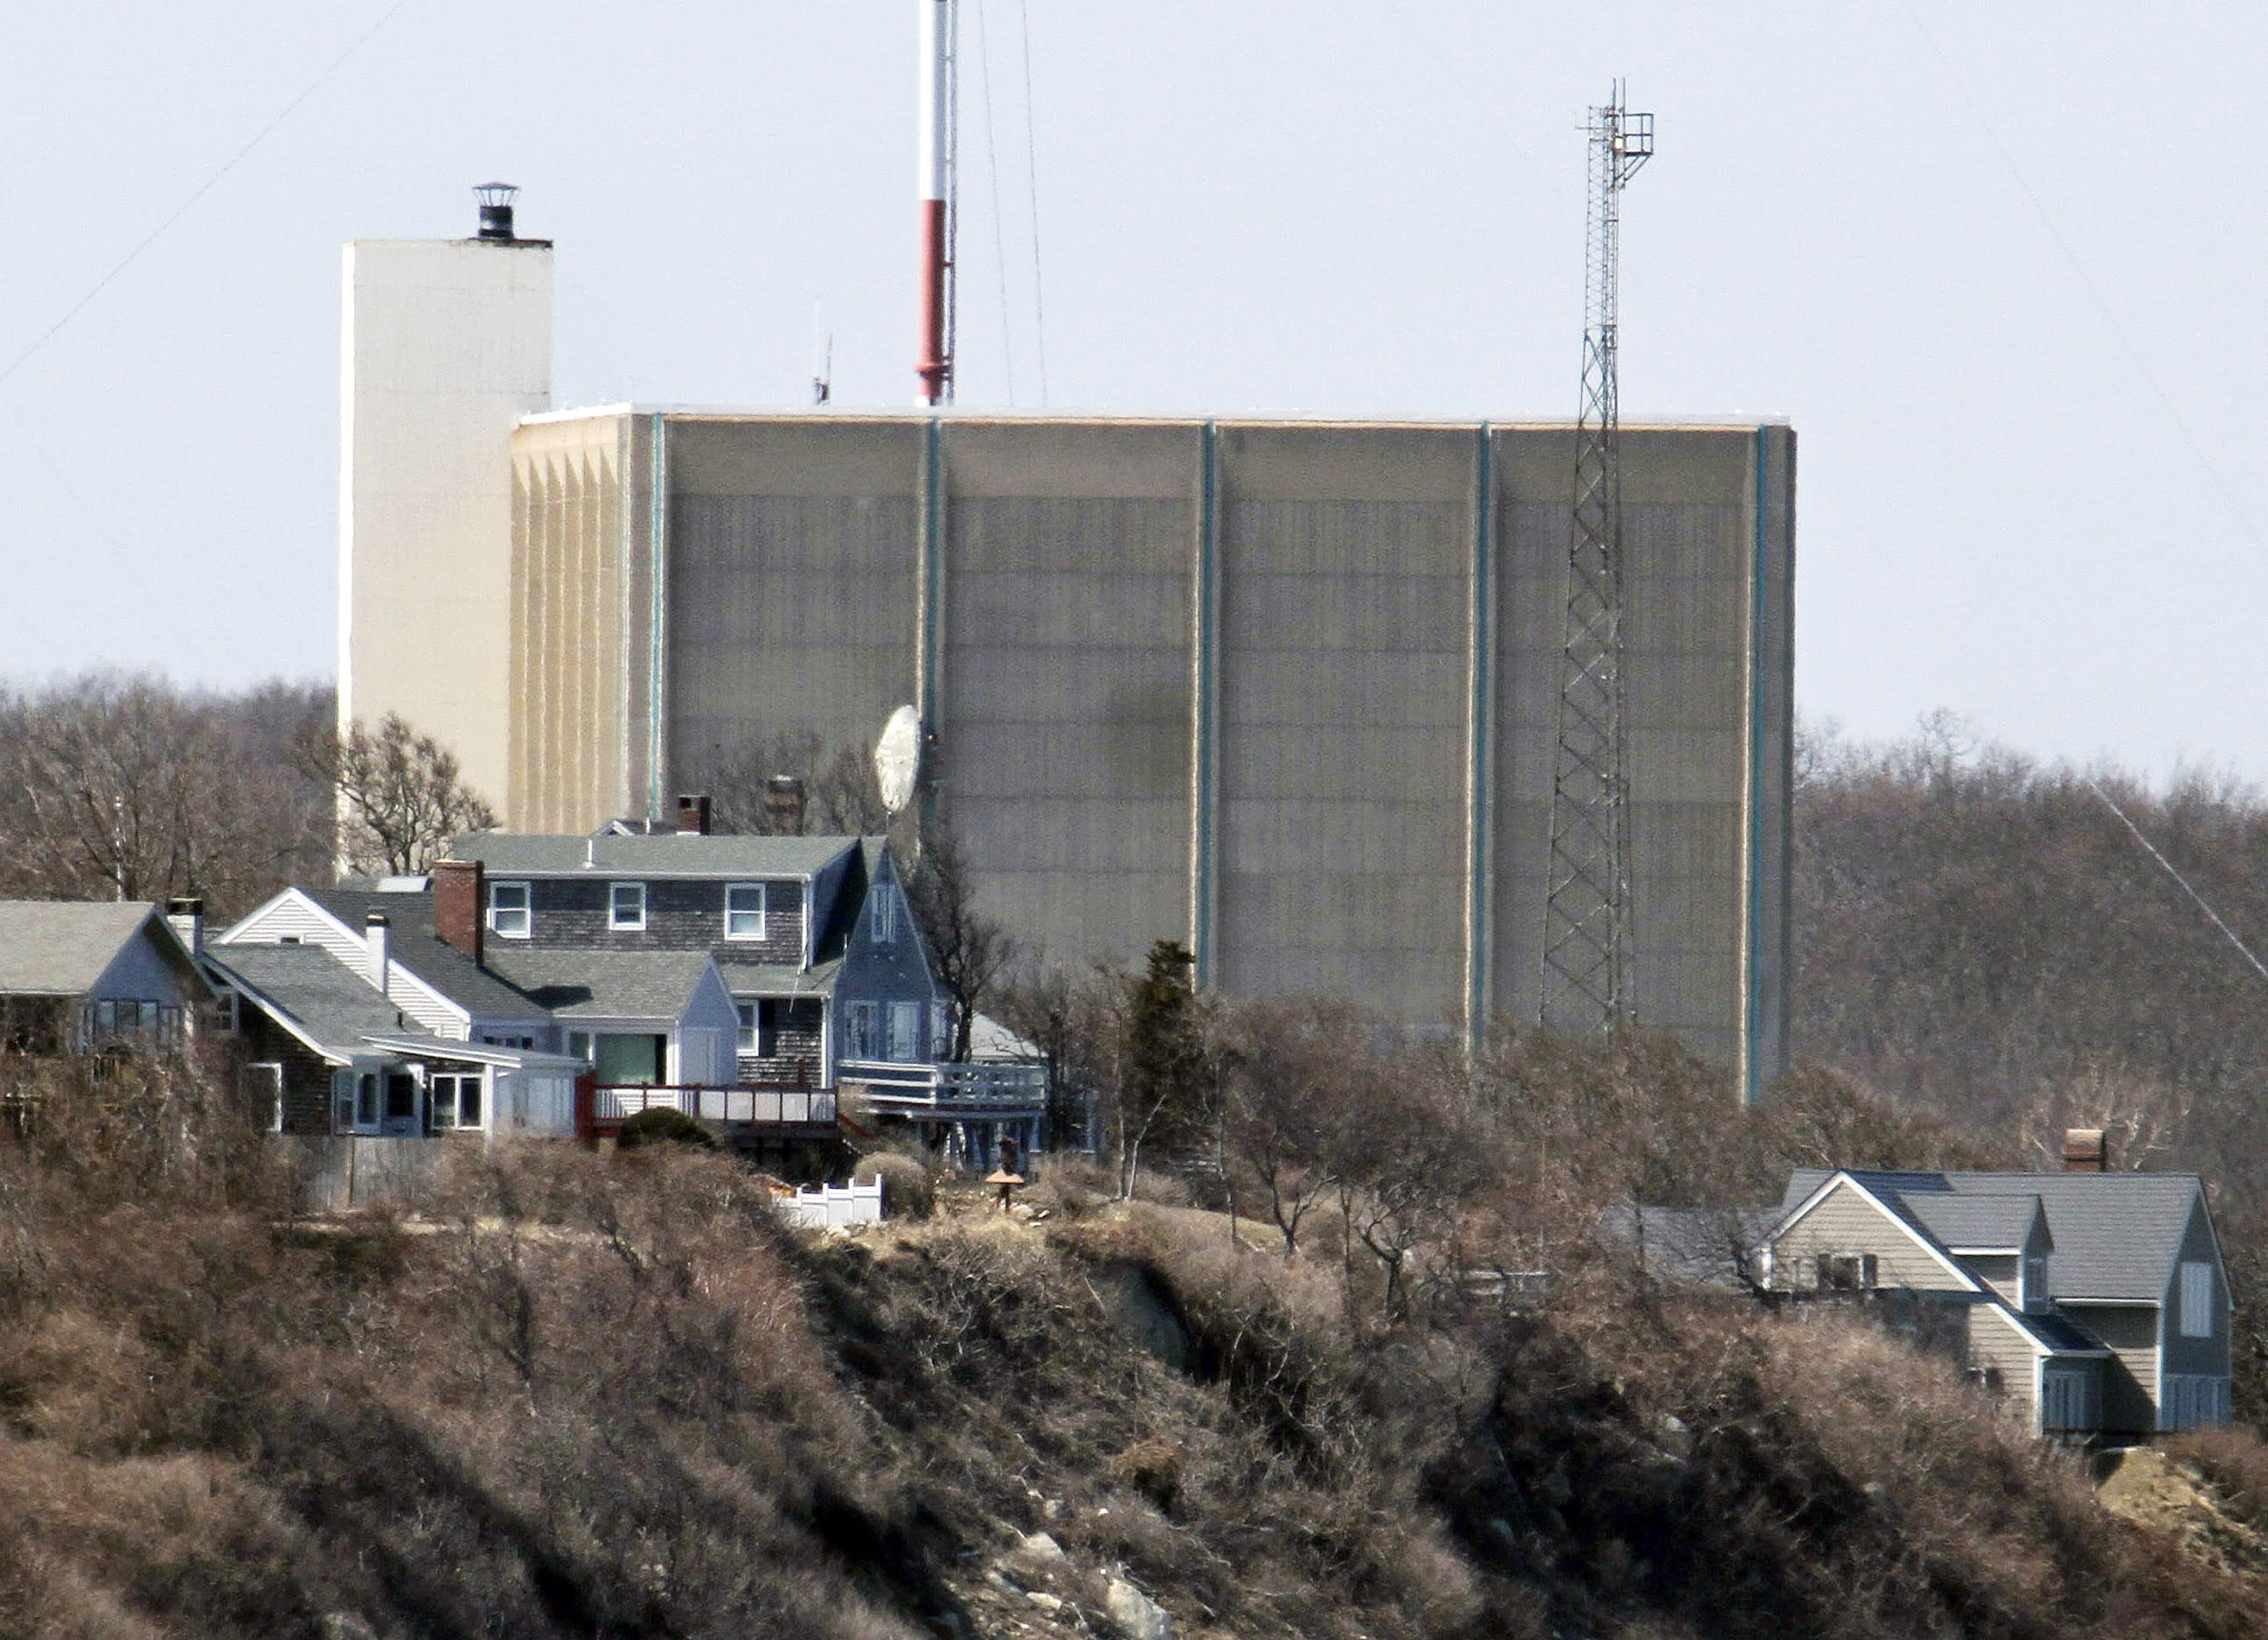 Massachusetts nuclear power plant to close by 2019